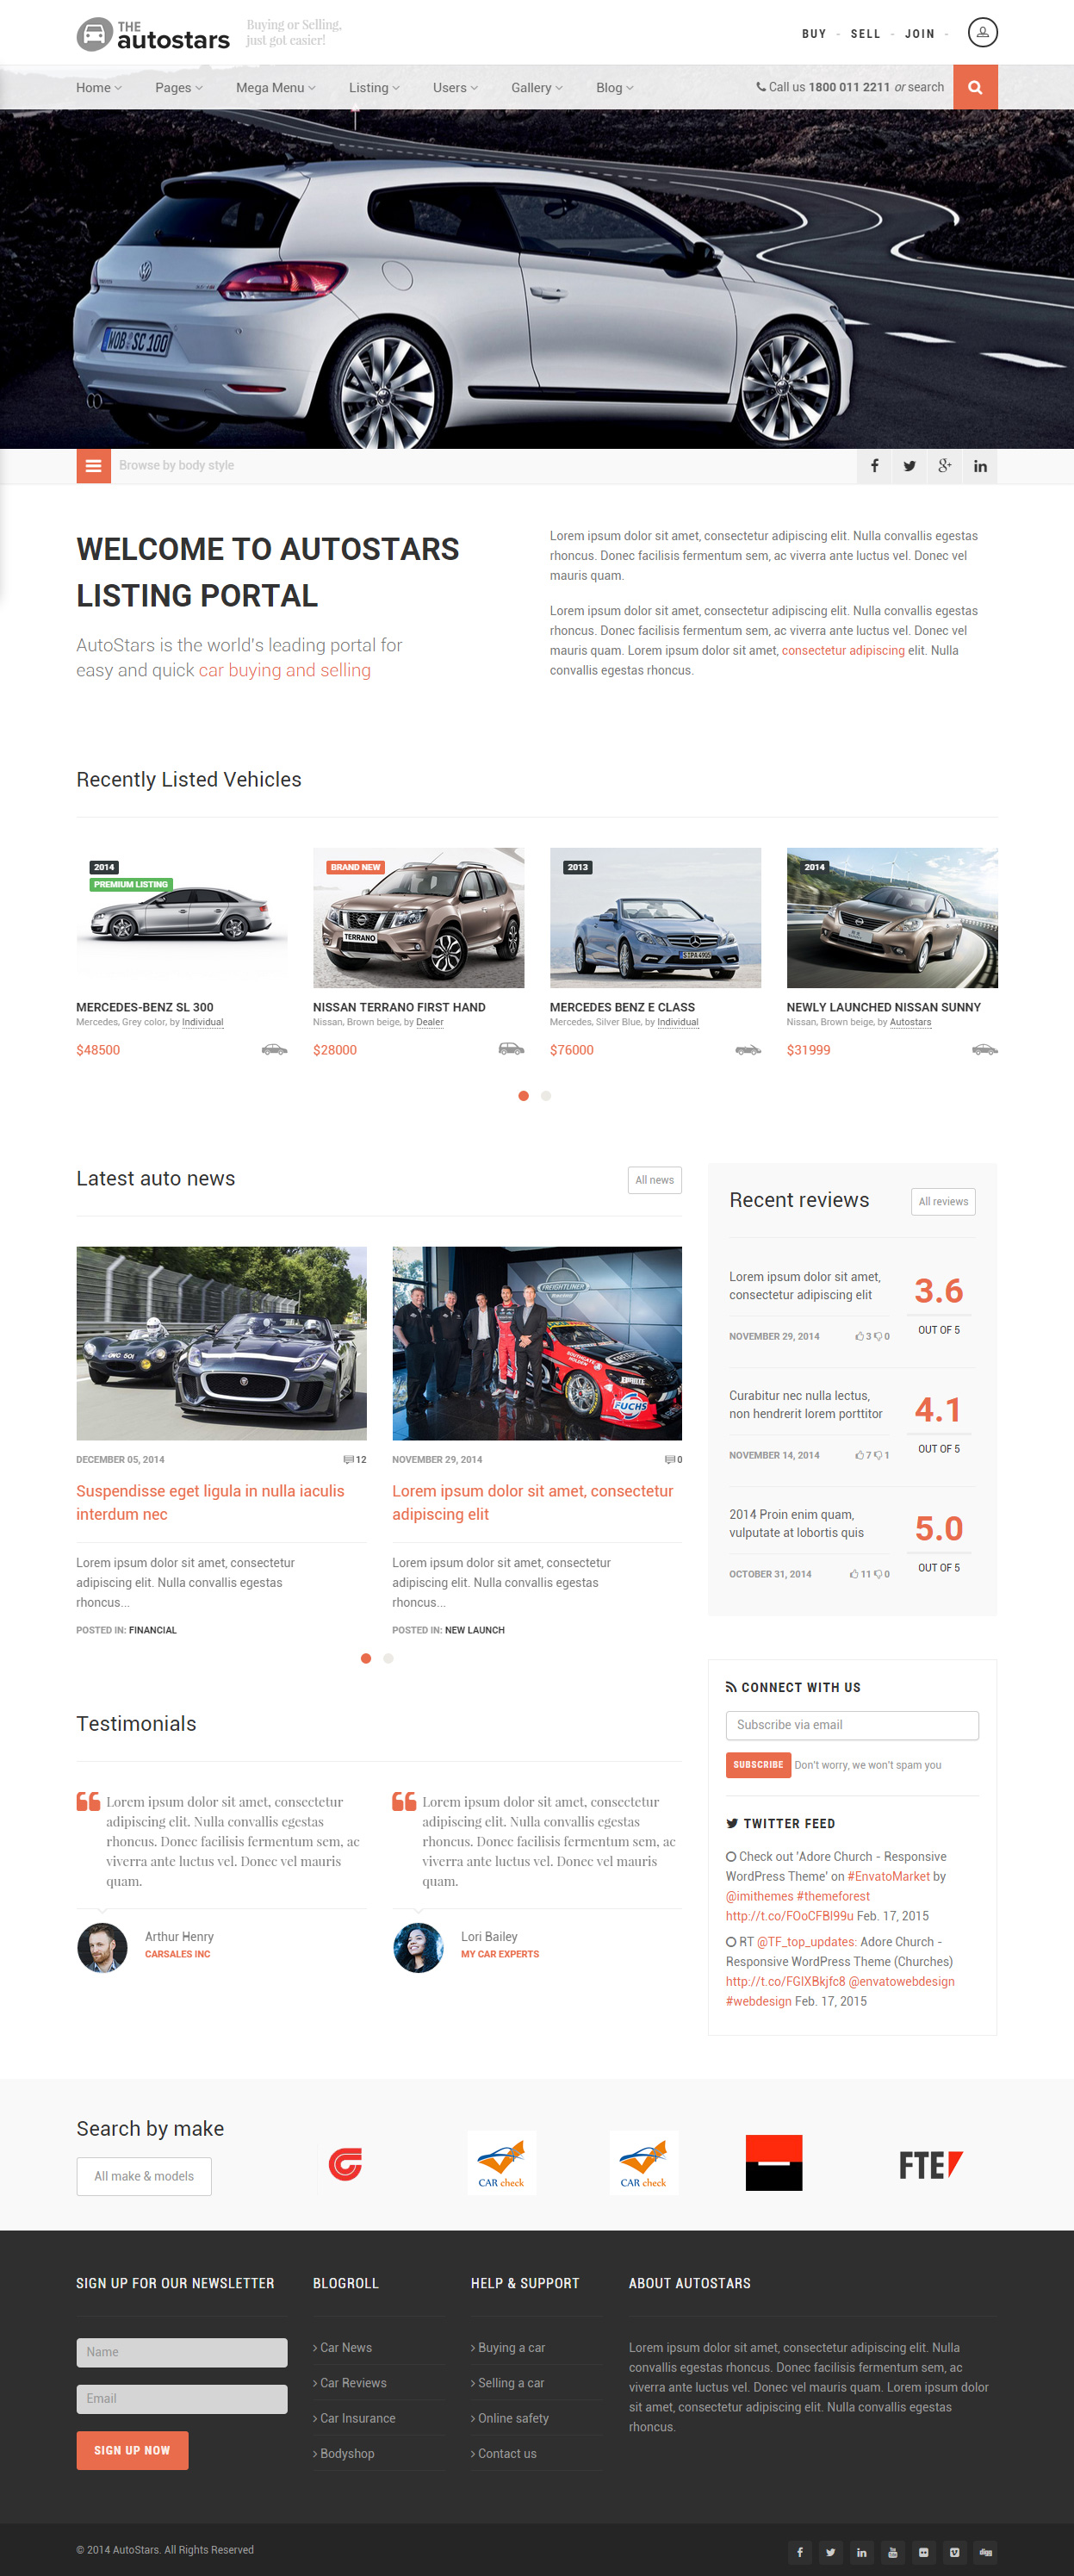 10 Best Responsive Html5 Cars And Car Dealership Templates 2015